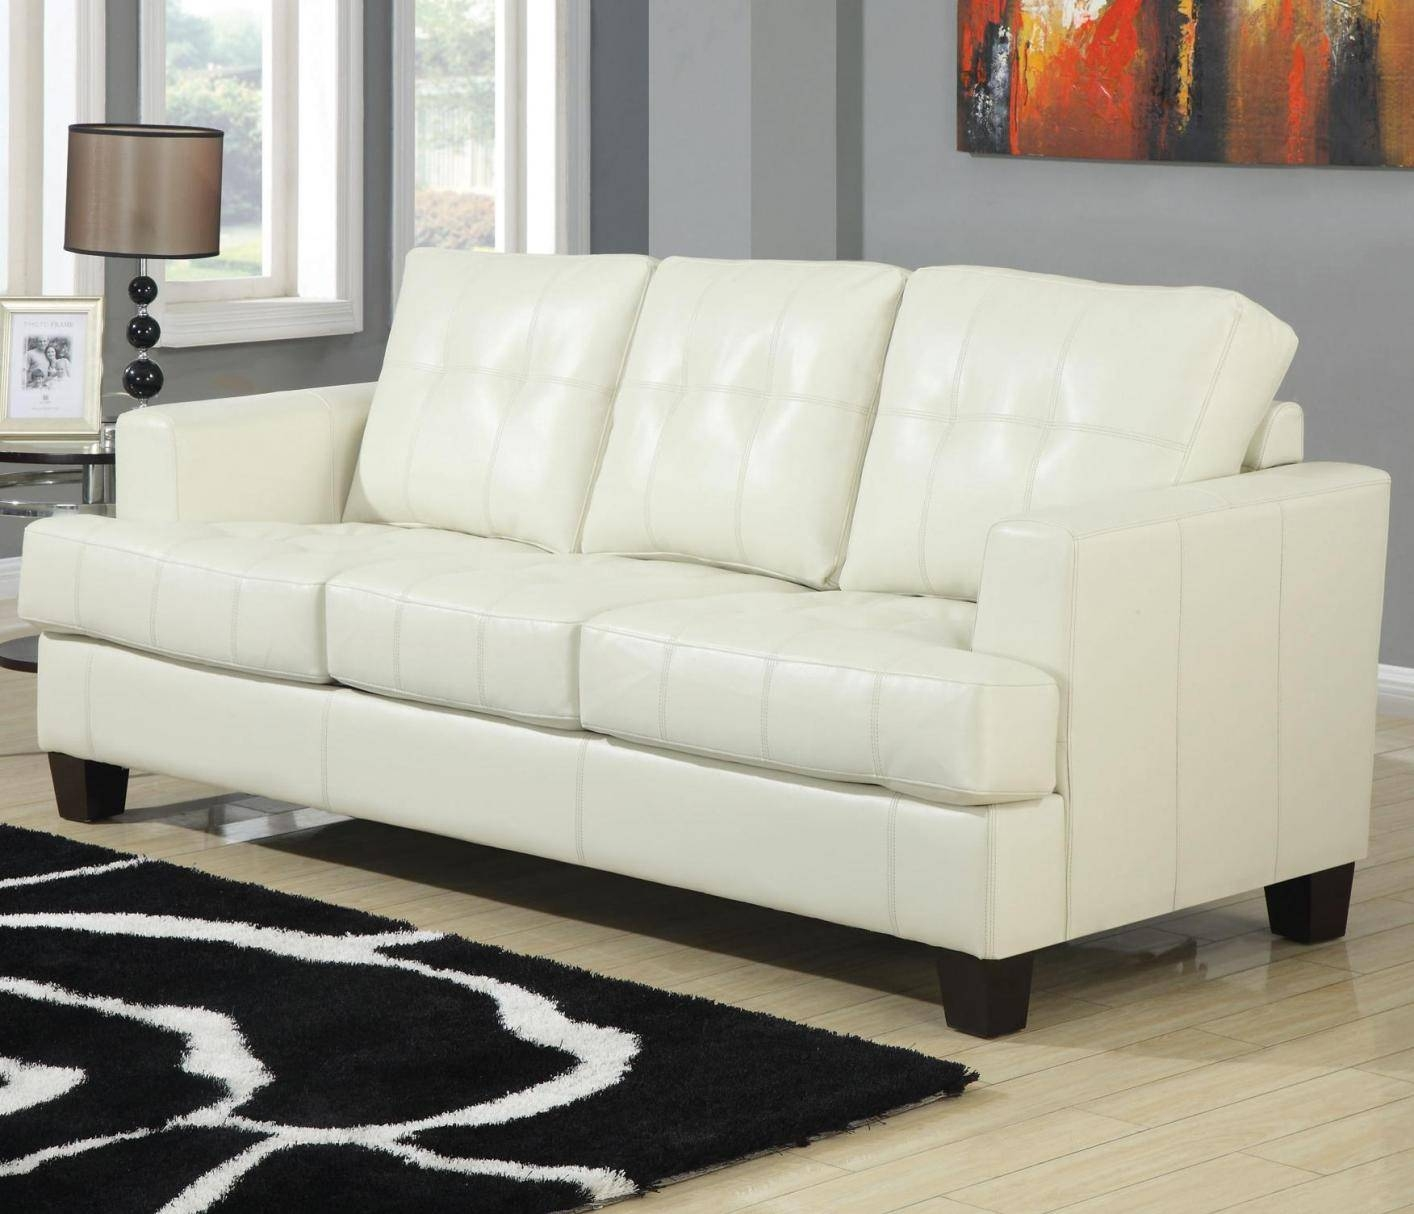 Cindy Crawford Home Inspiration Graphic Beige Leather Sofa – Home With Regard To Cindy Crawford Leather Sofas (View 2 of 15)